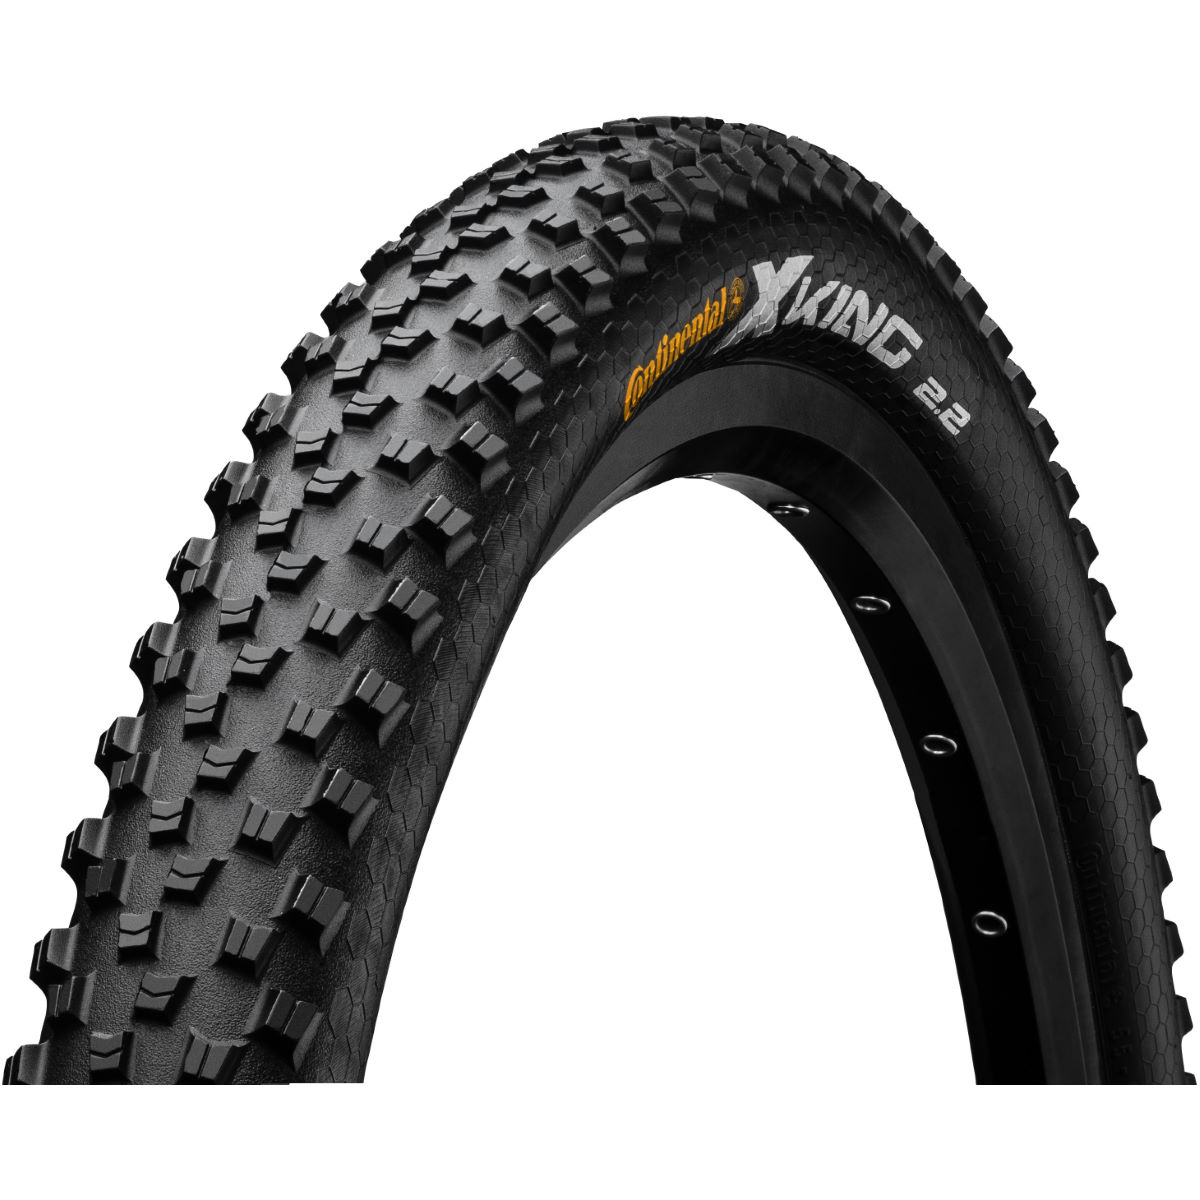 Continental Continental Cross King Folding MTB Tyre - ProTection   Tyres